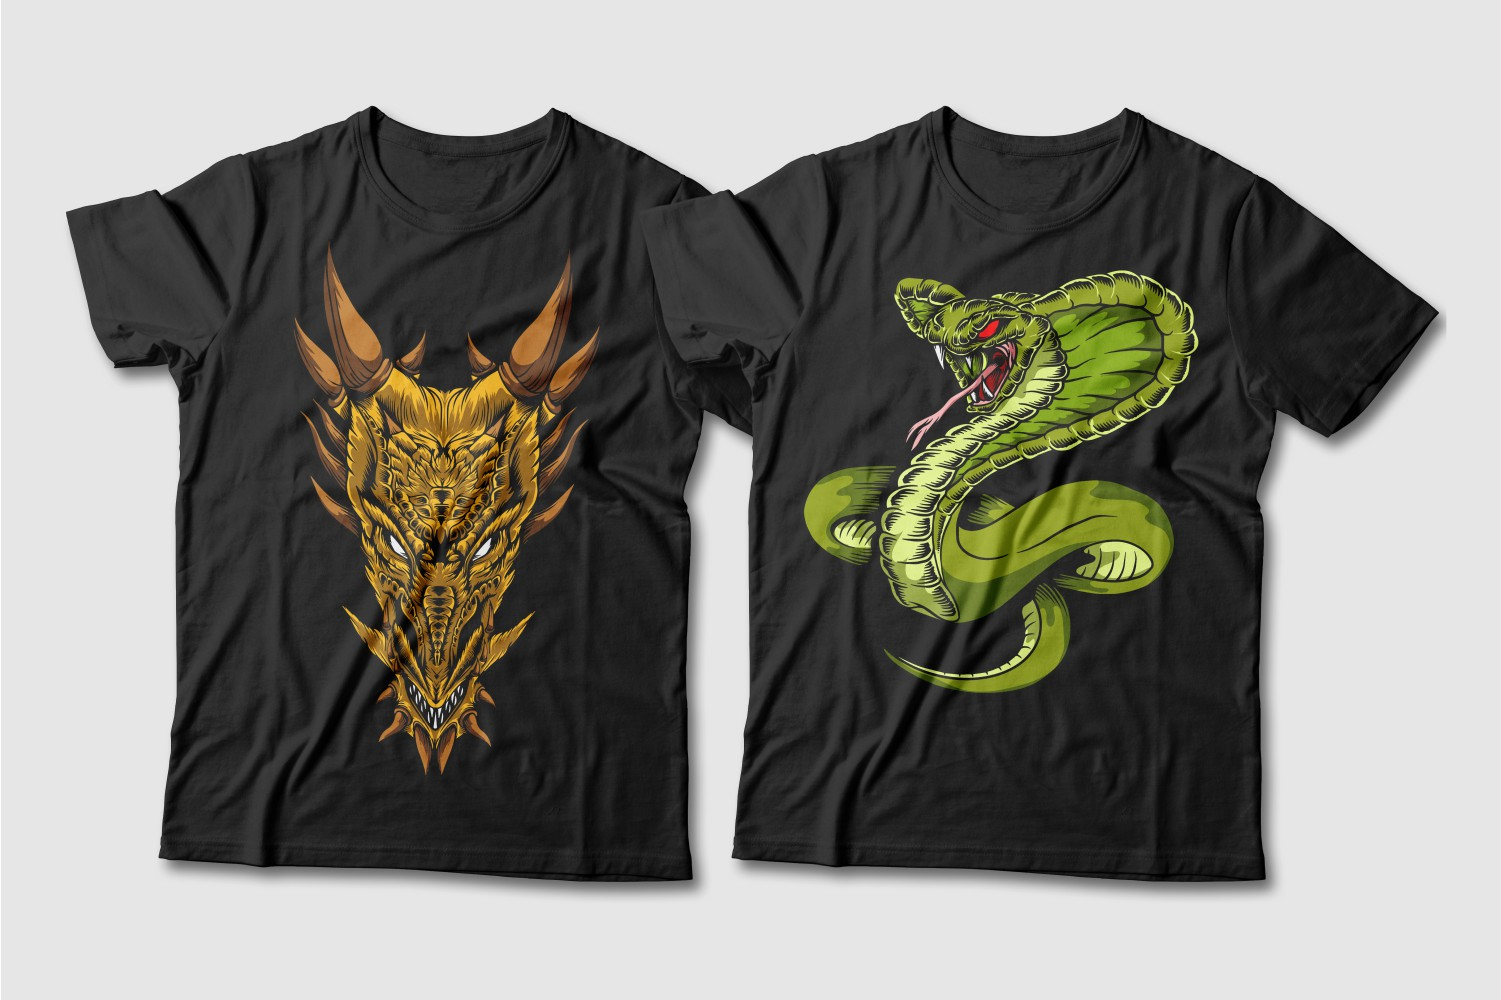 Black T-shirts featuring a terracotta dragon and a green cobra with red eyes.